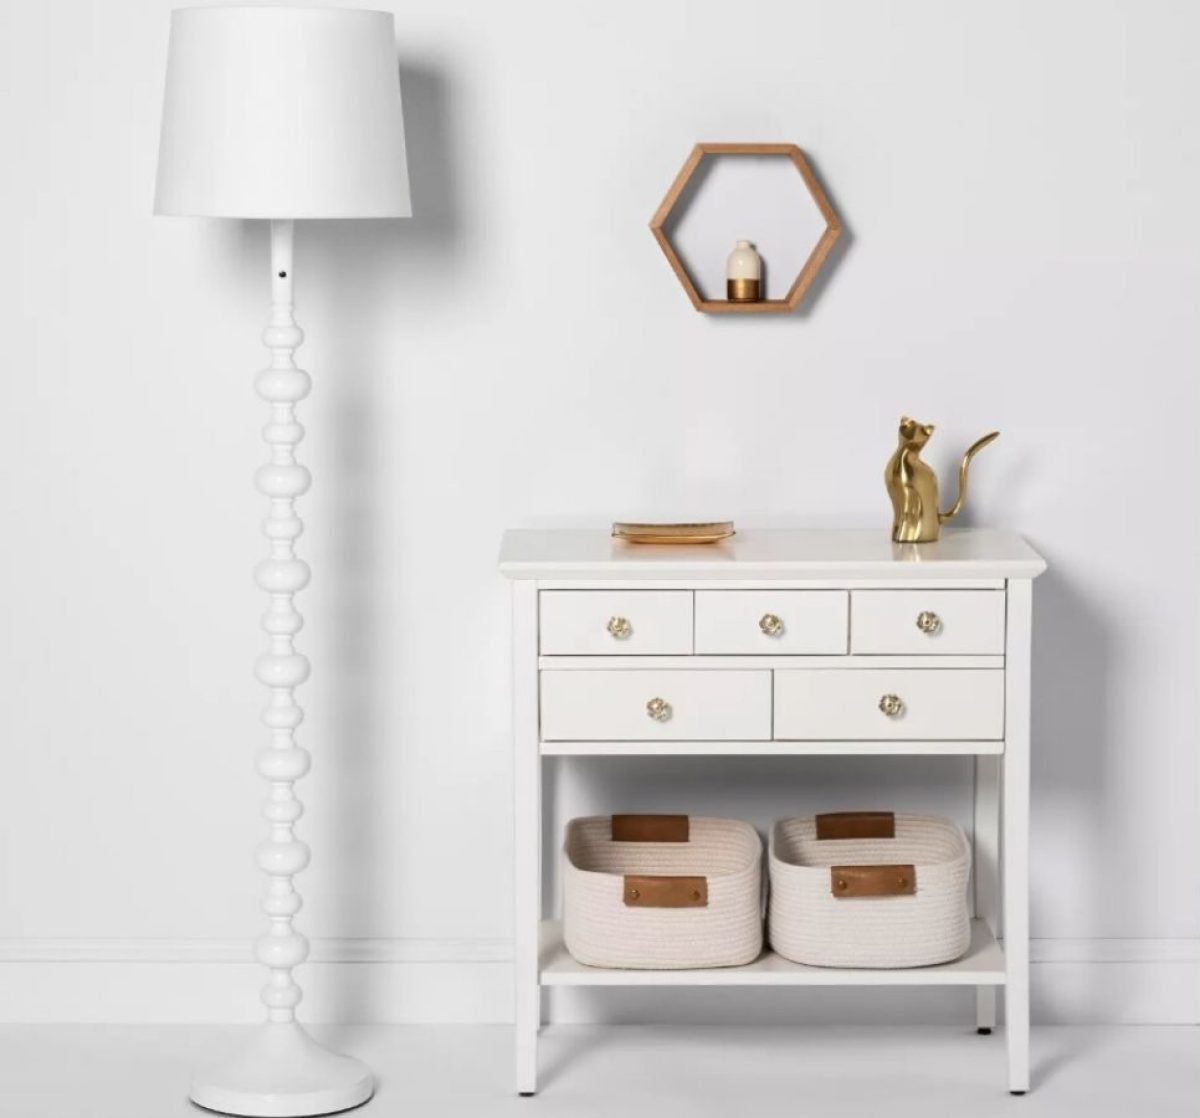 Floor lamp next to entry table with drawers, woven baskets on lower shelf, vase on top and mirror on wall above